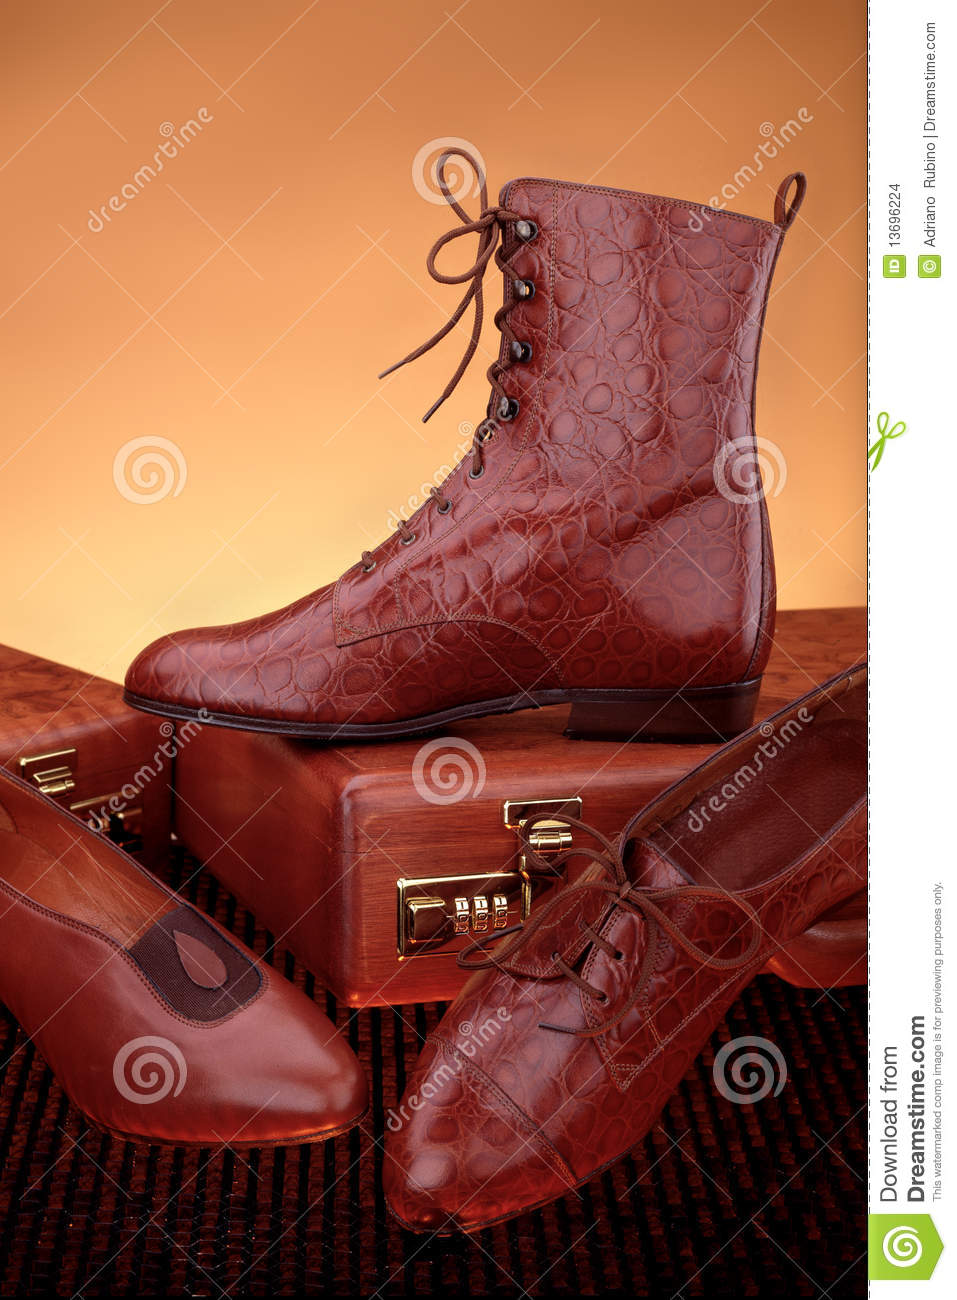 Leather Goods Stock Images.